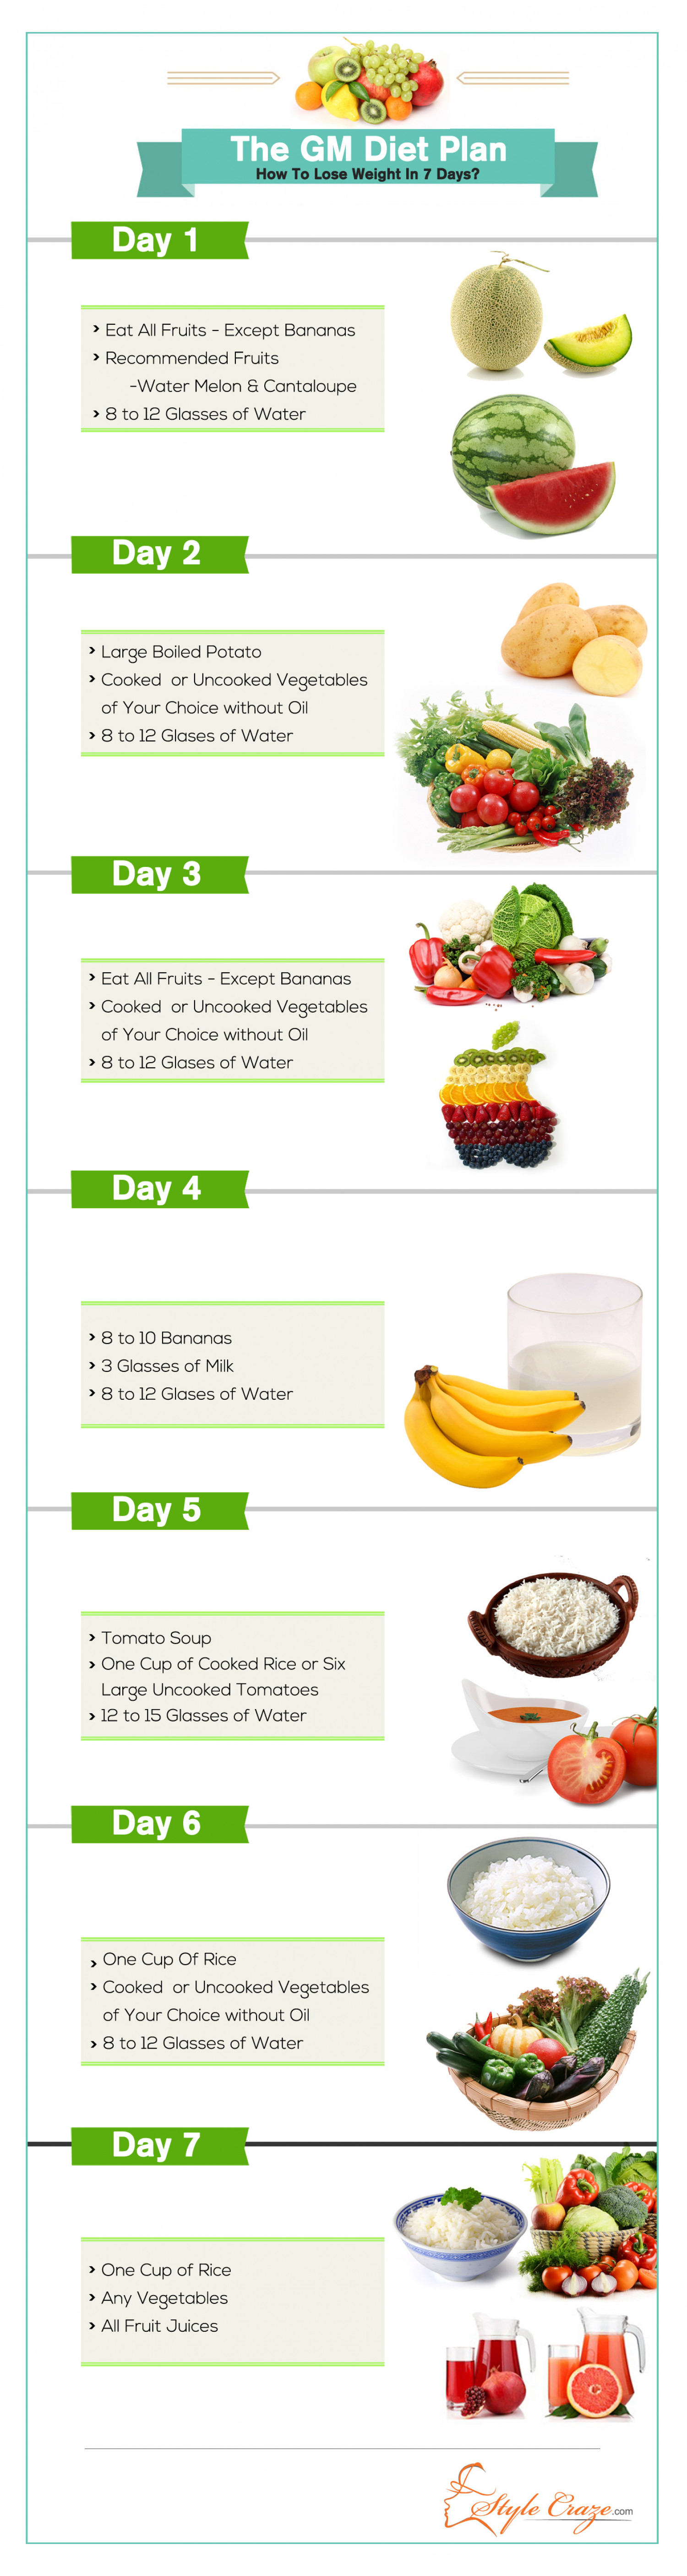 Gm Diet How To Lose Weight In 7 Days